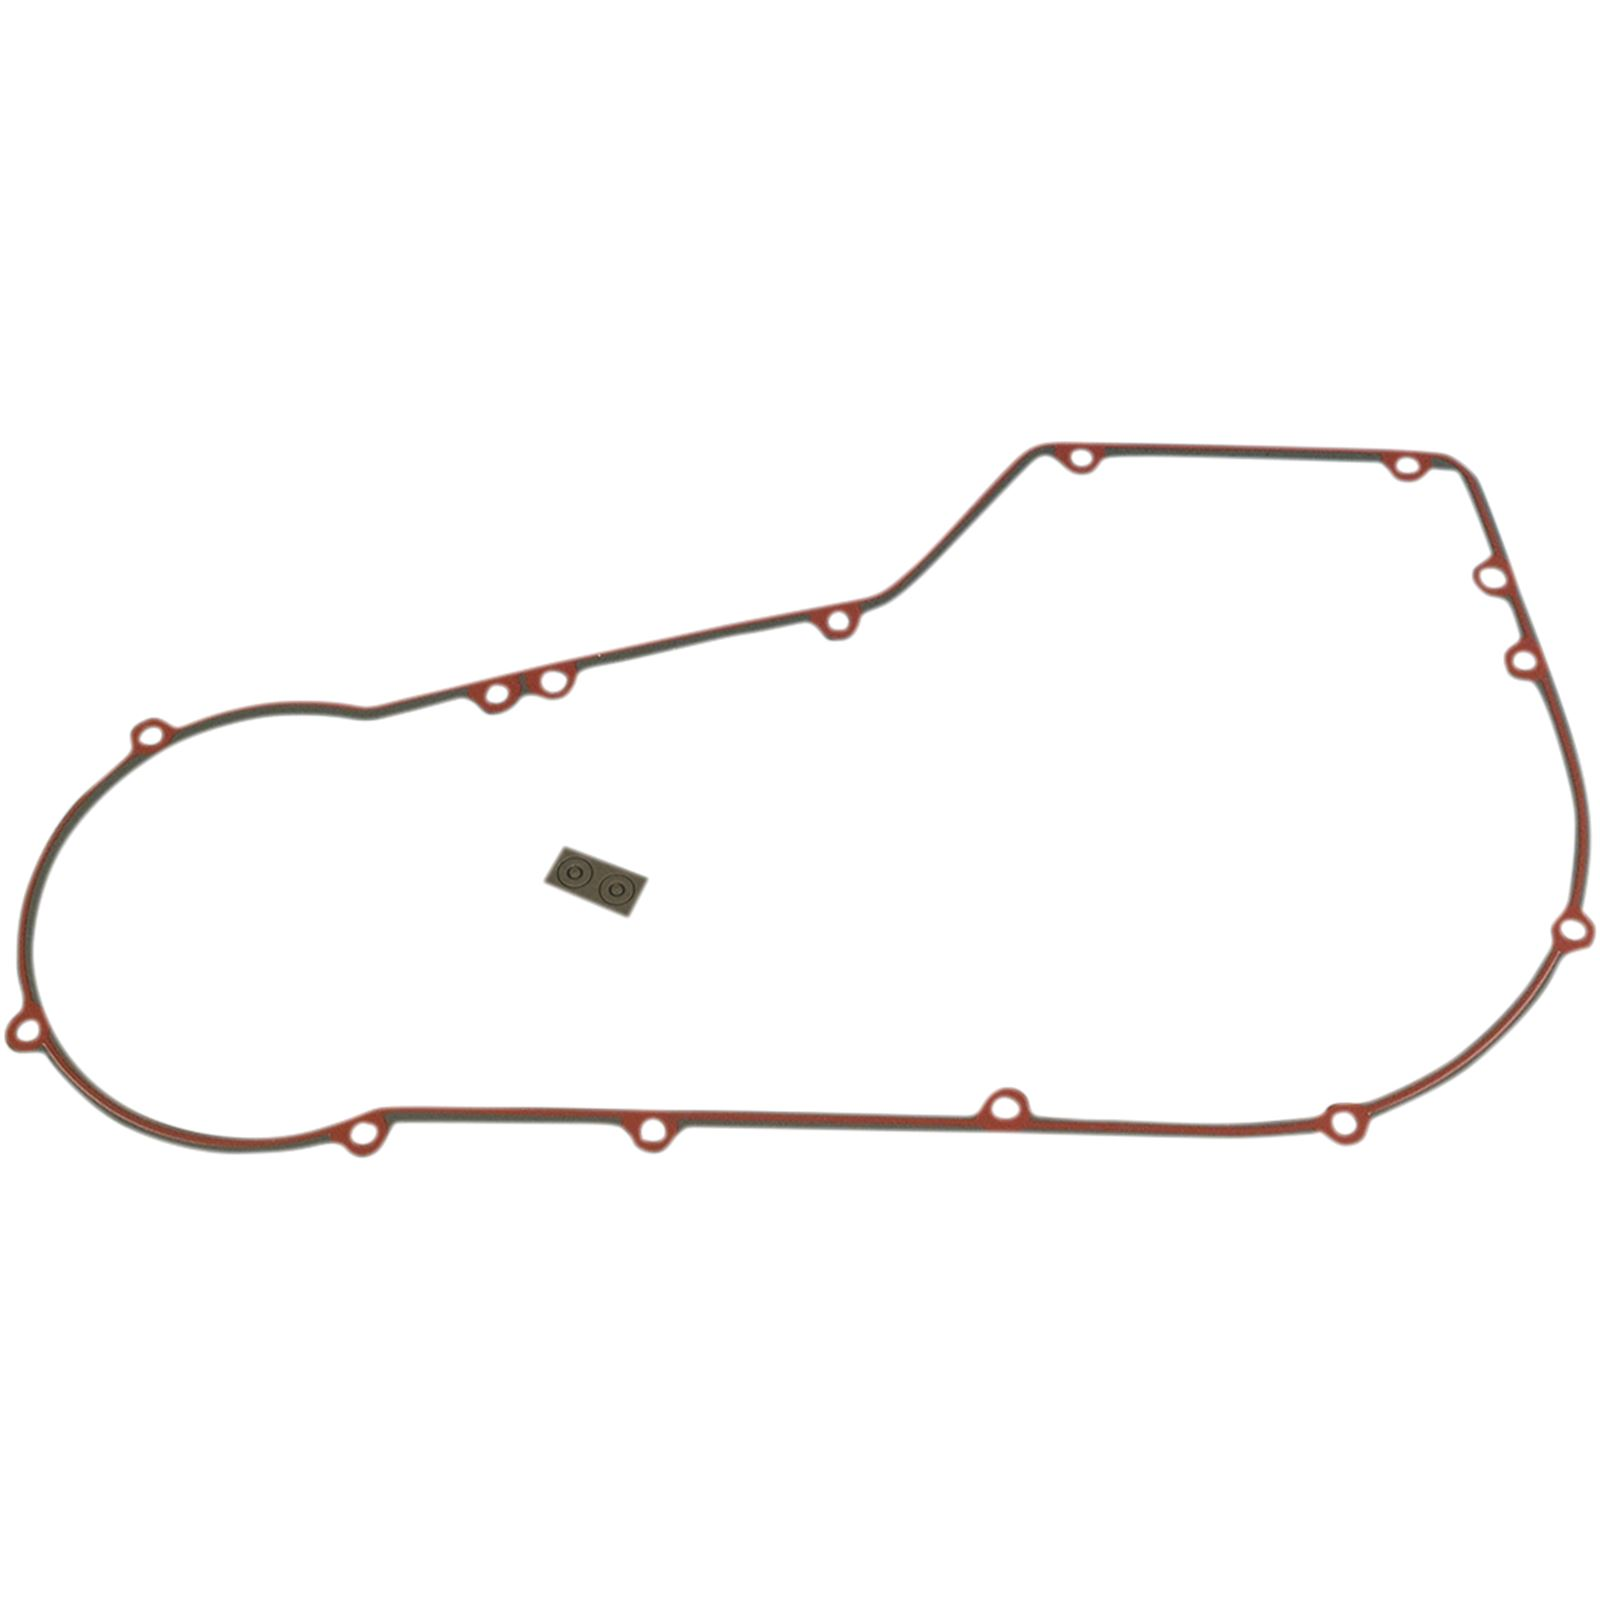 James Gaskets Primary Cover Gasket Softail